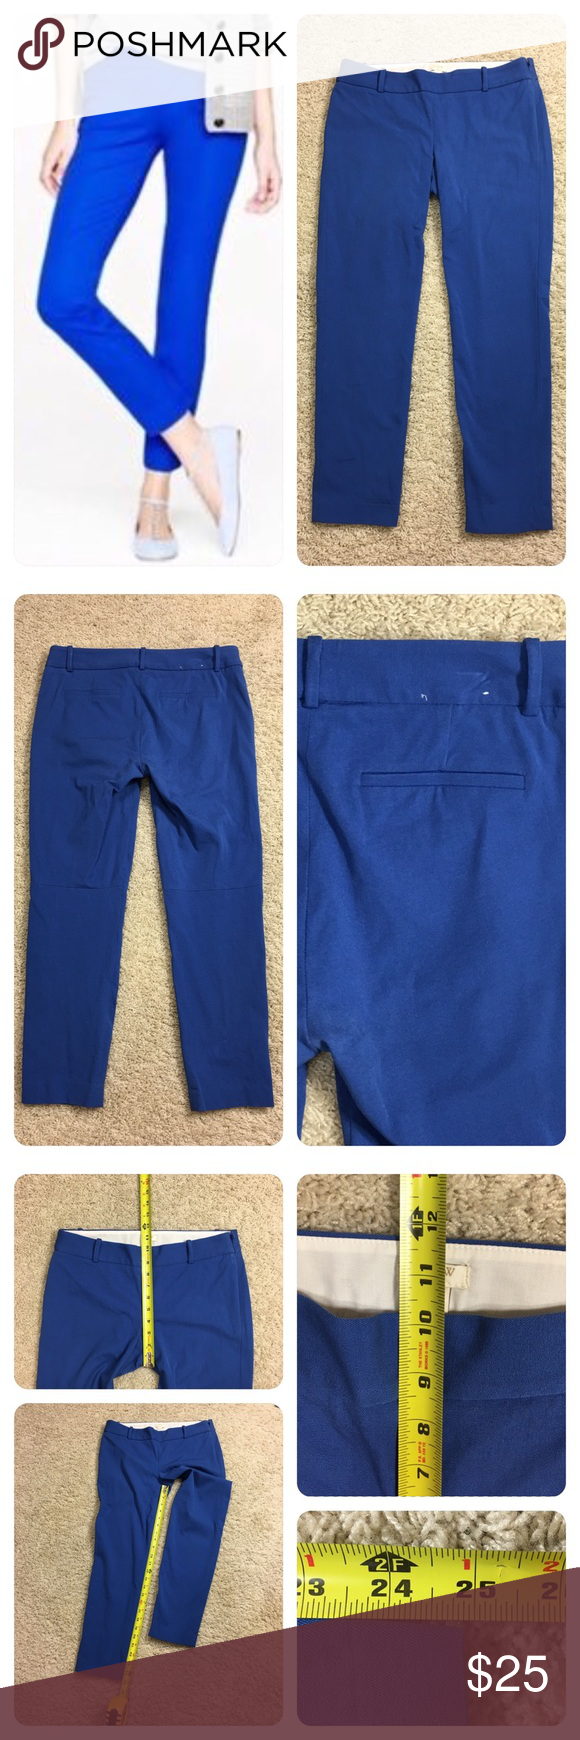 """J. Crew Winnie pant in stretch twill J. Crew royal blue Winnie pant in stretch twill. These are such a pretty color and perfect for spring and summer. zipper on the side. """" Featuring stretchy cotton  (5% Elastane) and a superslim fit, it may just be the most flattering pant you'll ever own—and the most comfortable too.""""  Fitted through hip and thigh, with a skinny, ankle-length leg.  No flaws noted. J. Crew Pants Ankle & Cropped"""